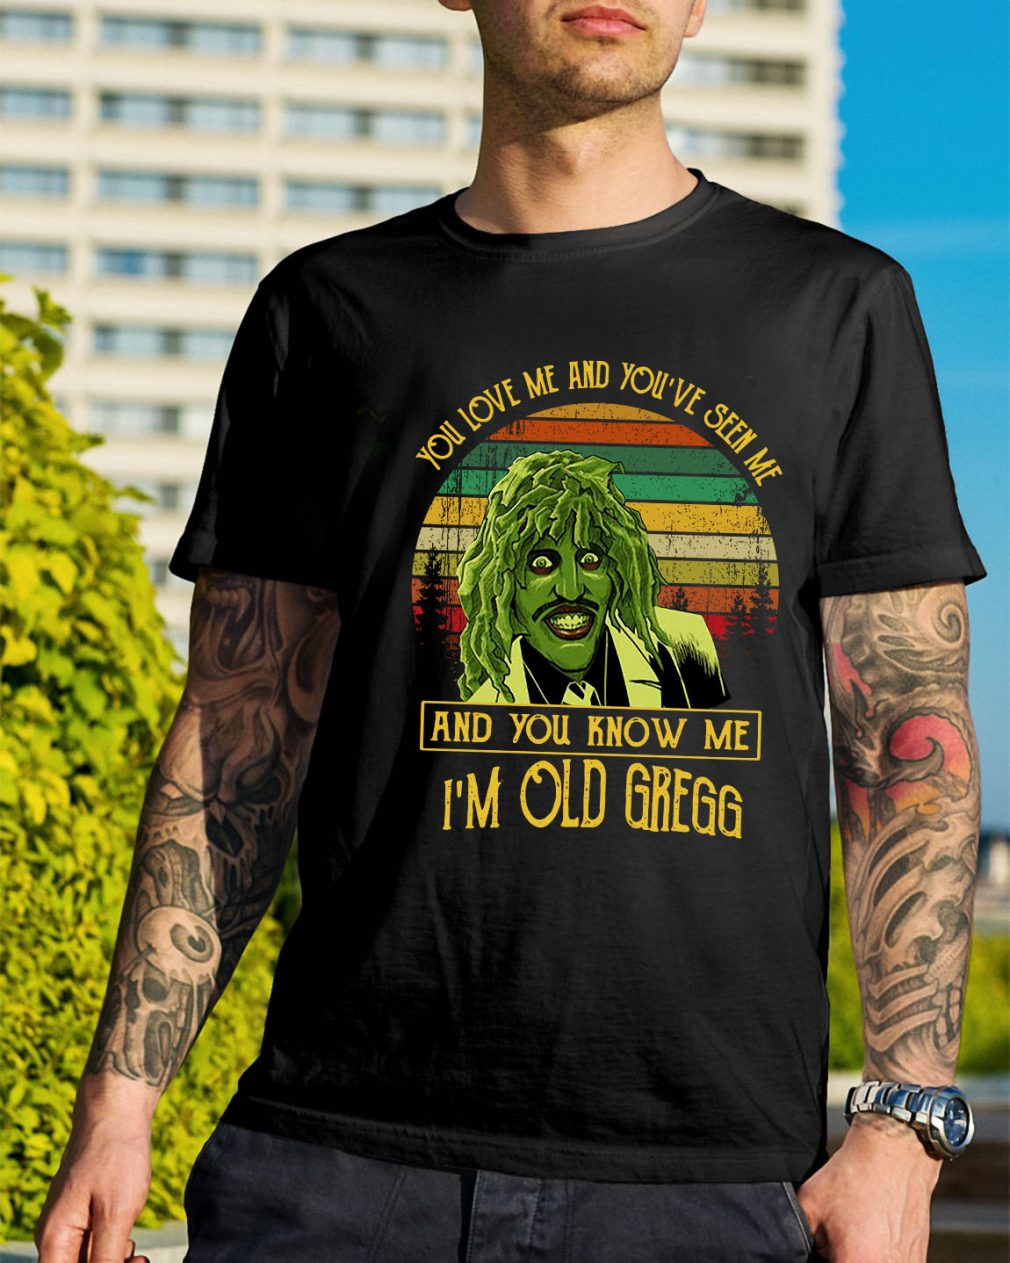 You've seen me and you know me I'm Old Gregg vintage shirt